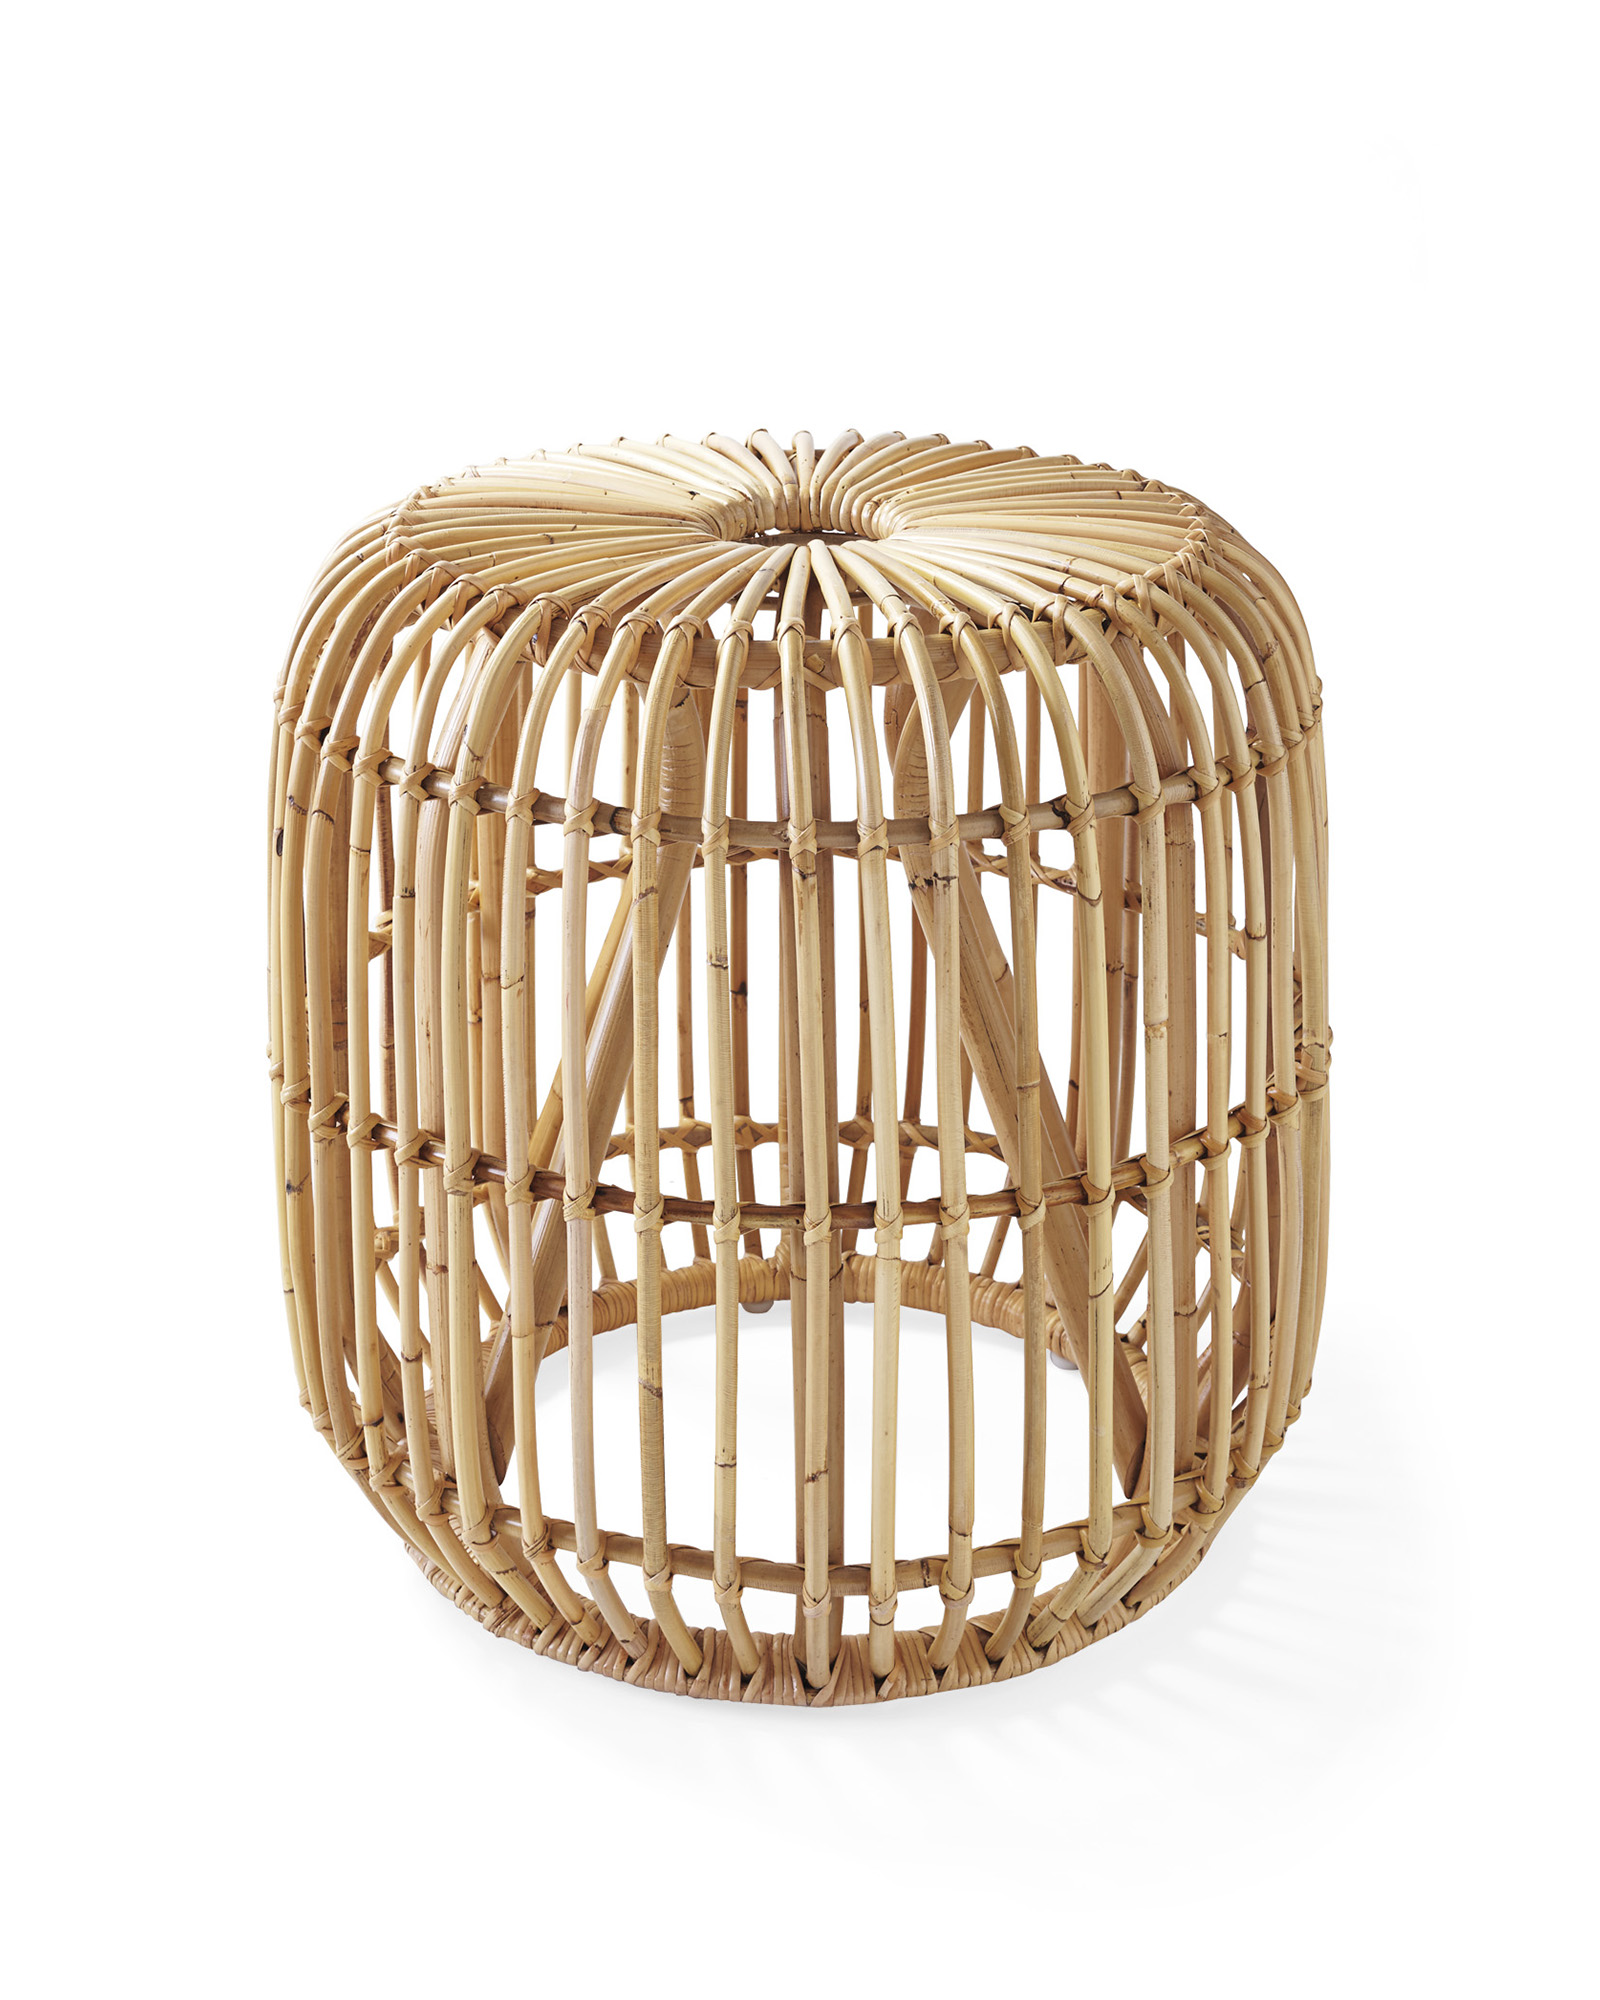 pismo rattan side table serena lily dira stool natural crop wicker storage accent industrial end diy battery operated dining room light bar height bistro set patio and chair